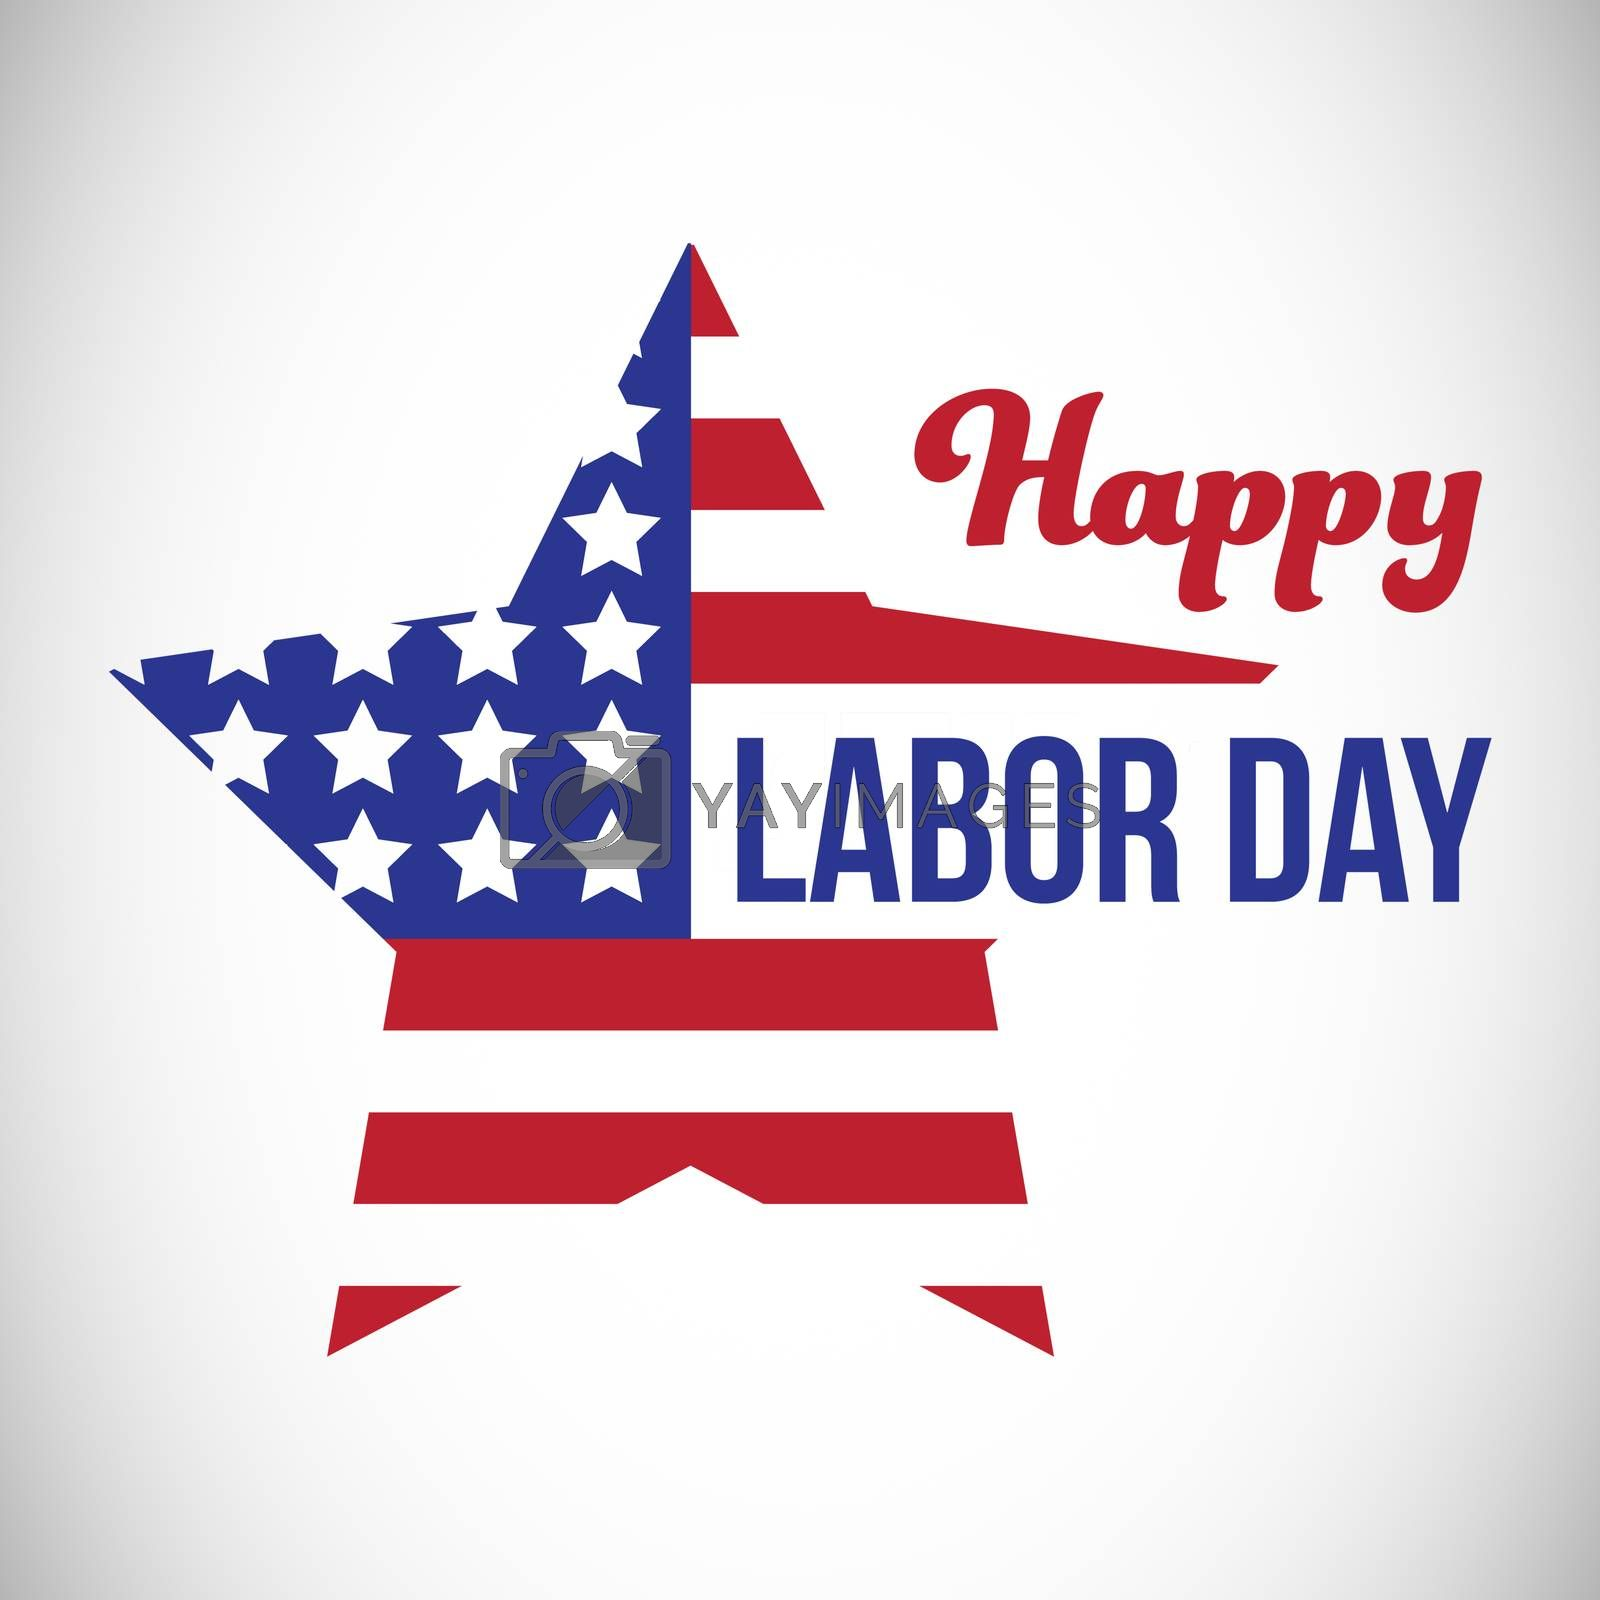 Composite image of happy labor day text and star shape American flag by Wavebreakmedia